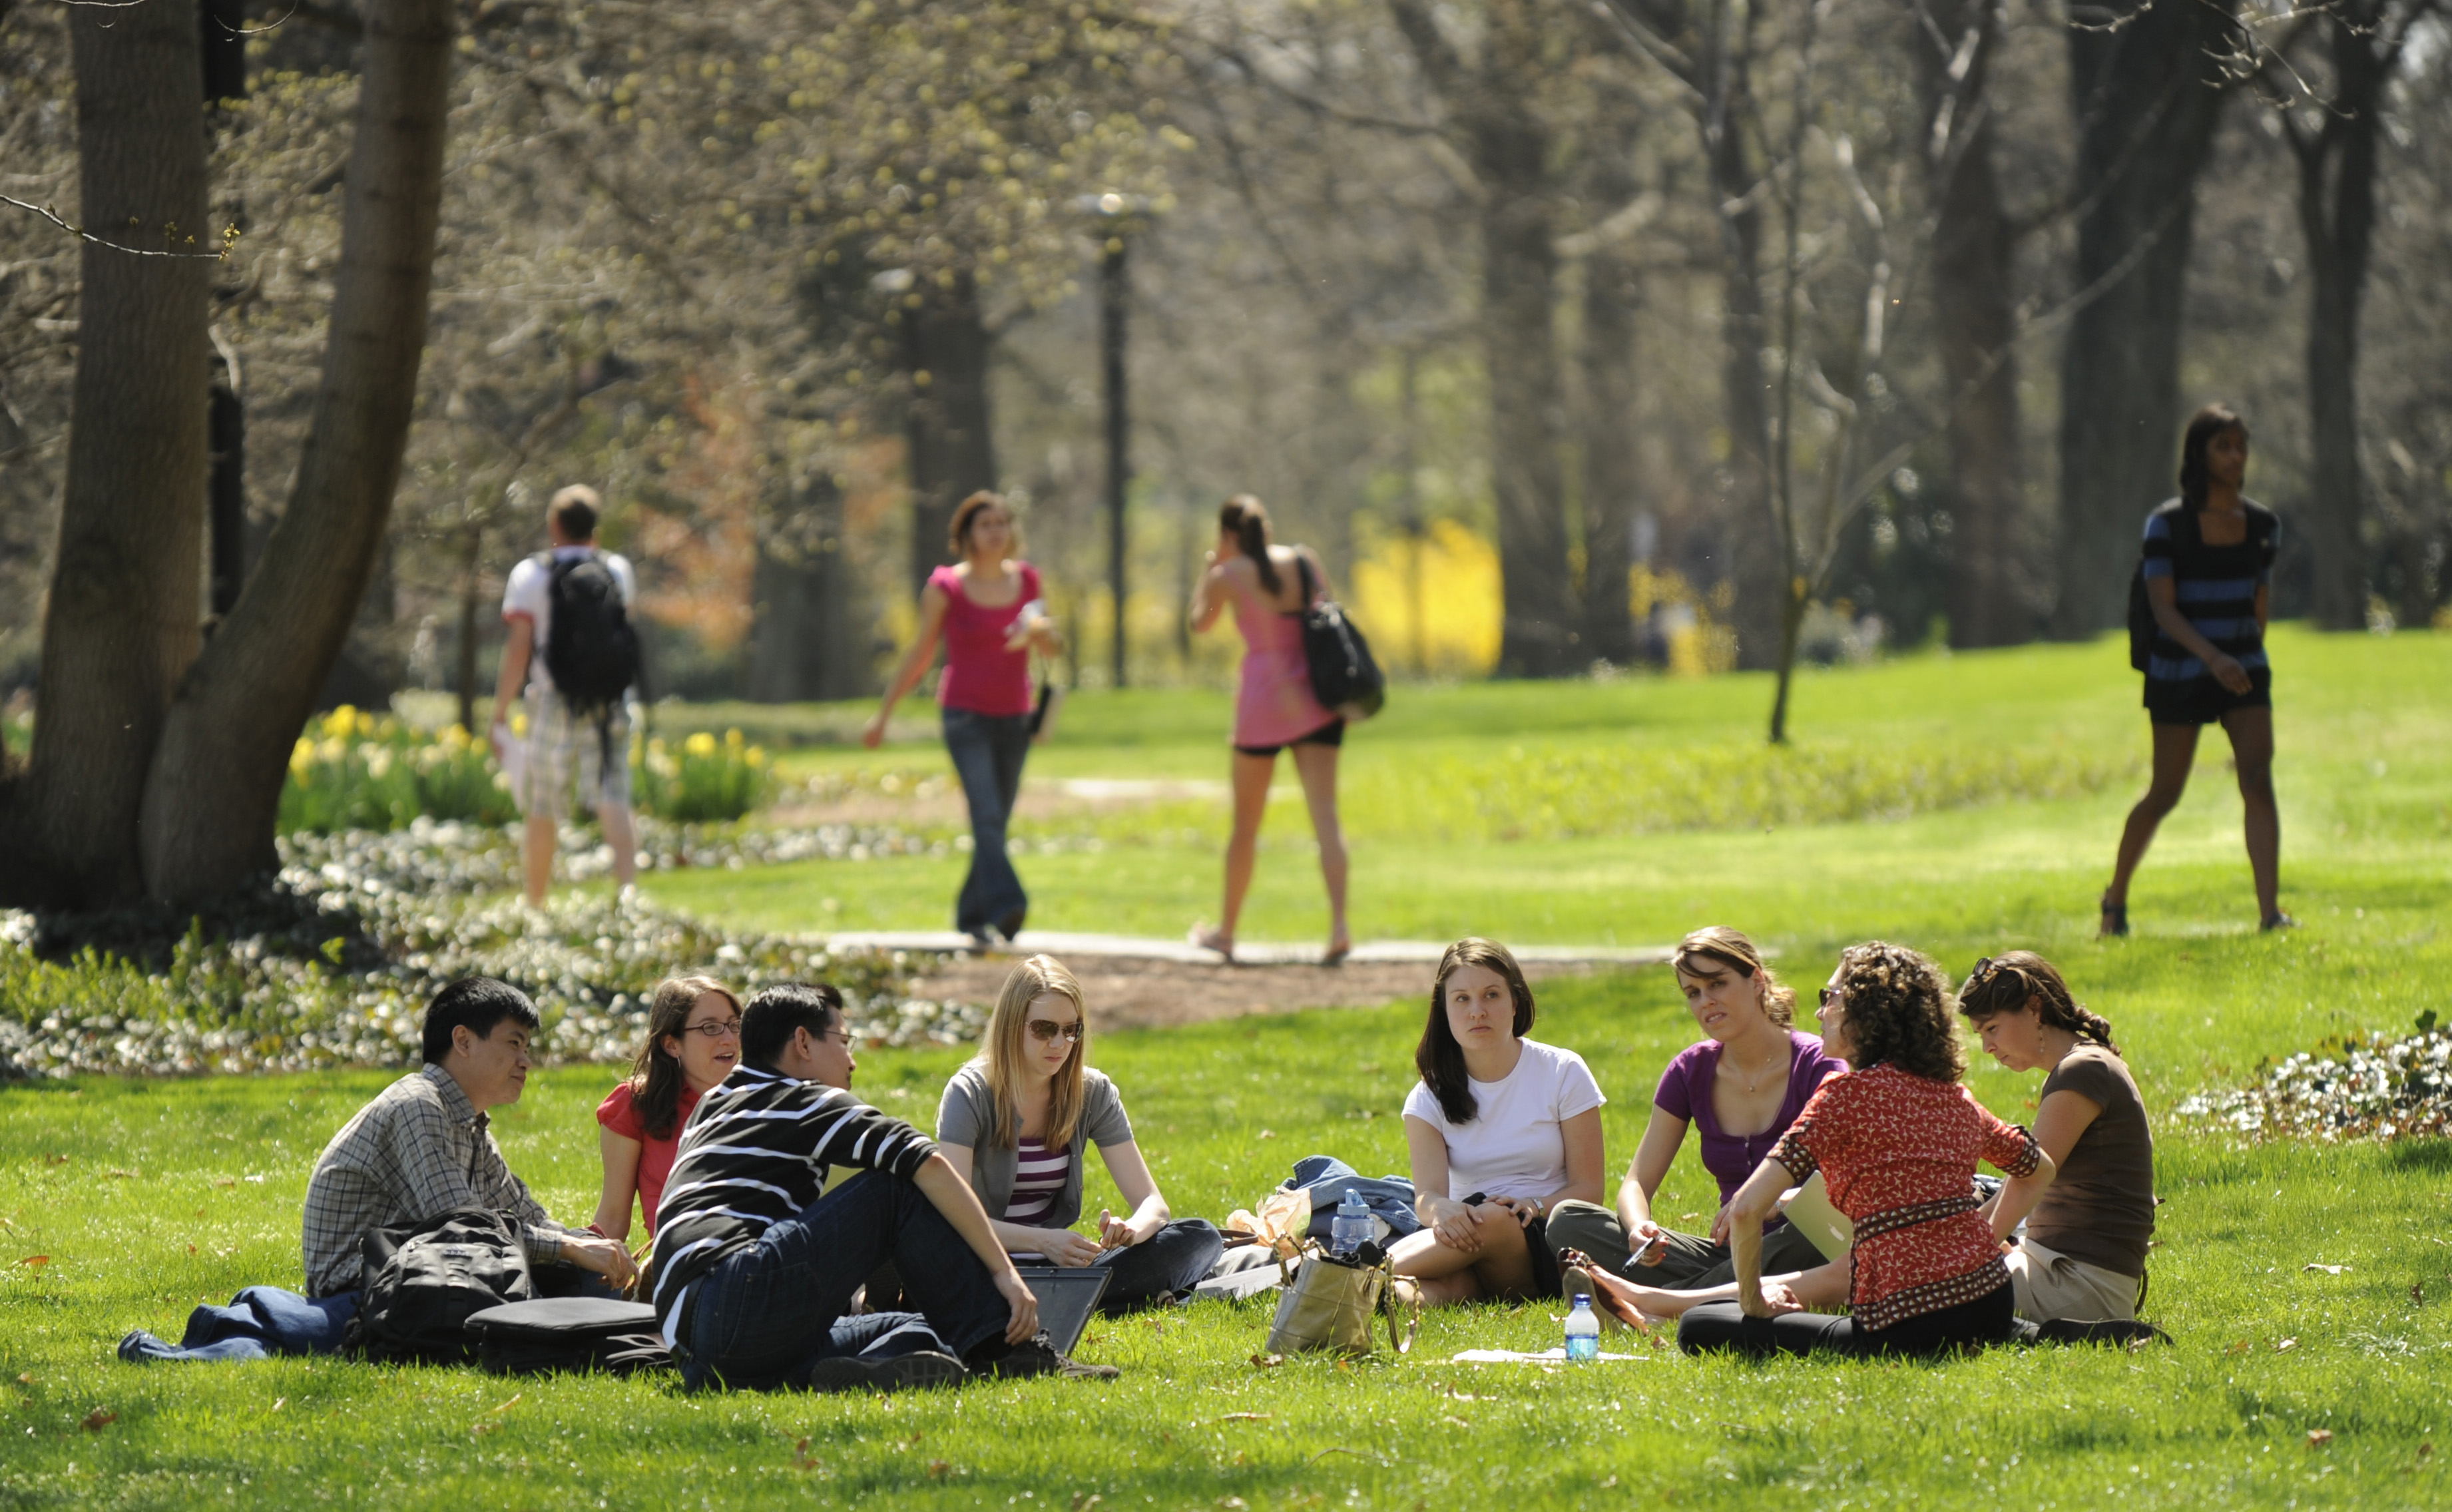 People sitting in a circle on a campus lawn on a sunny day.